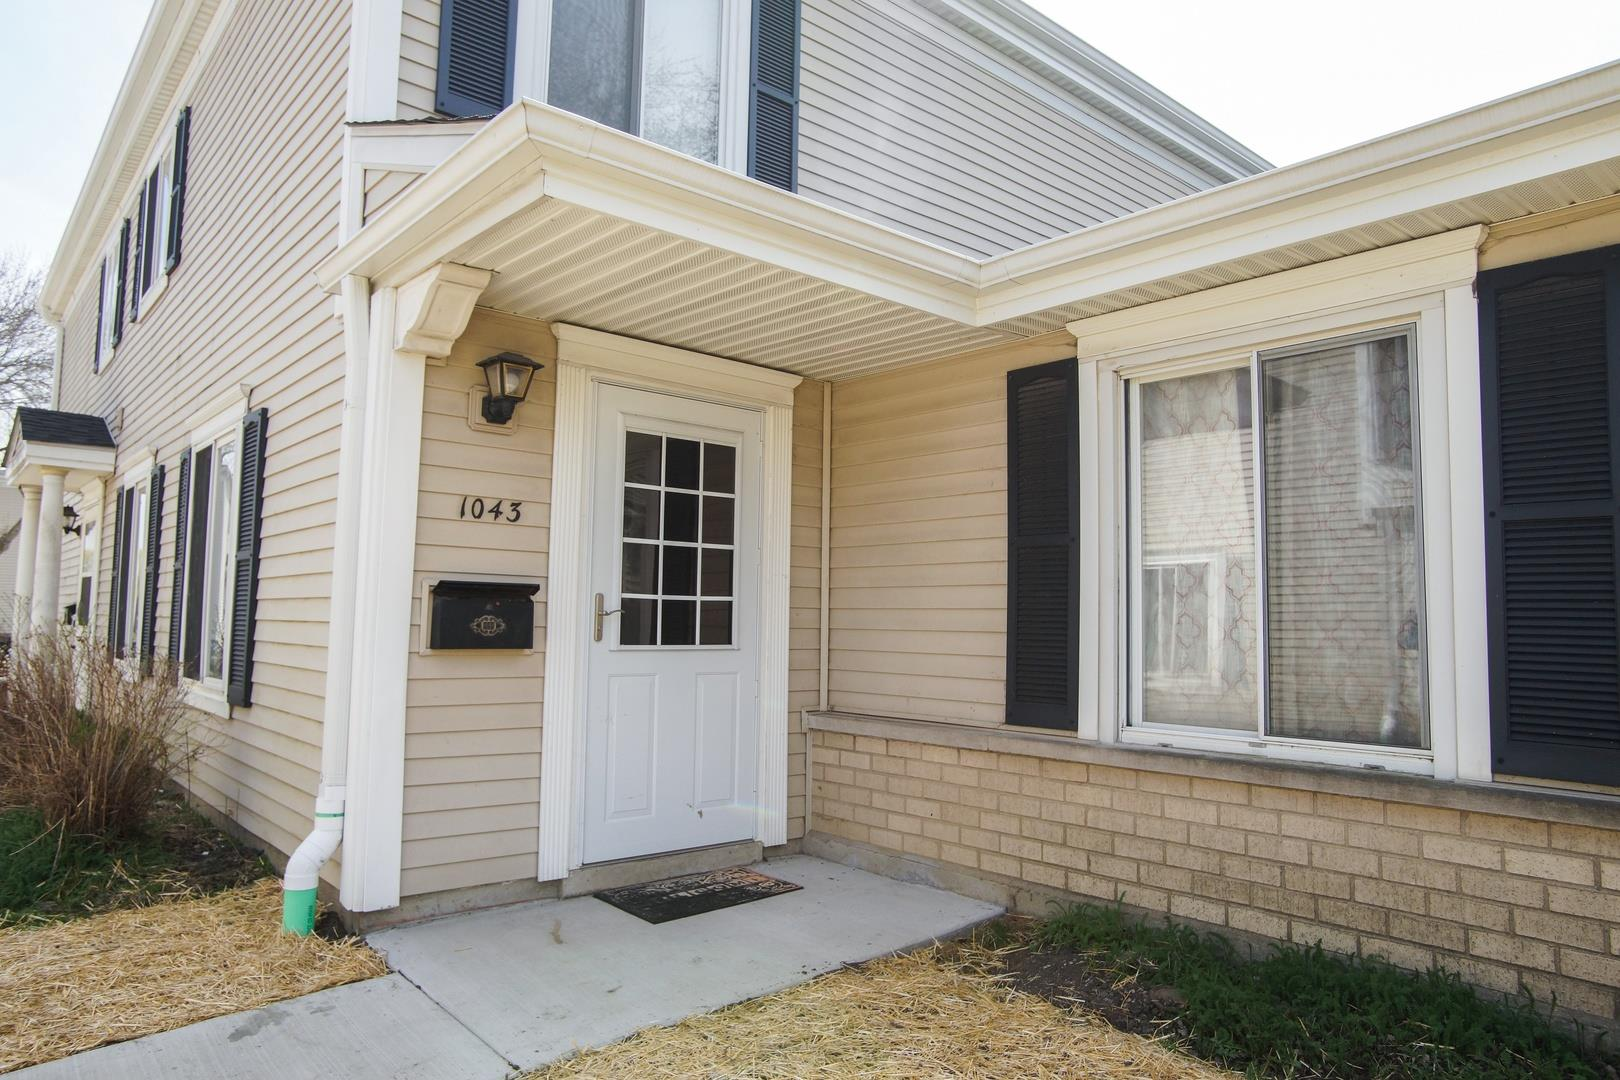 1043 Cove Drive #136B, Prospect Heights, IL 60070 - #: 10662722